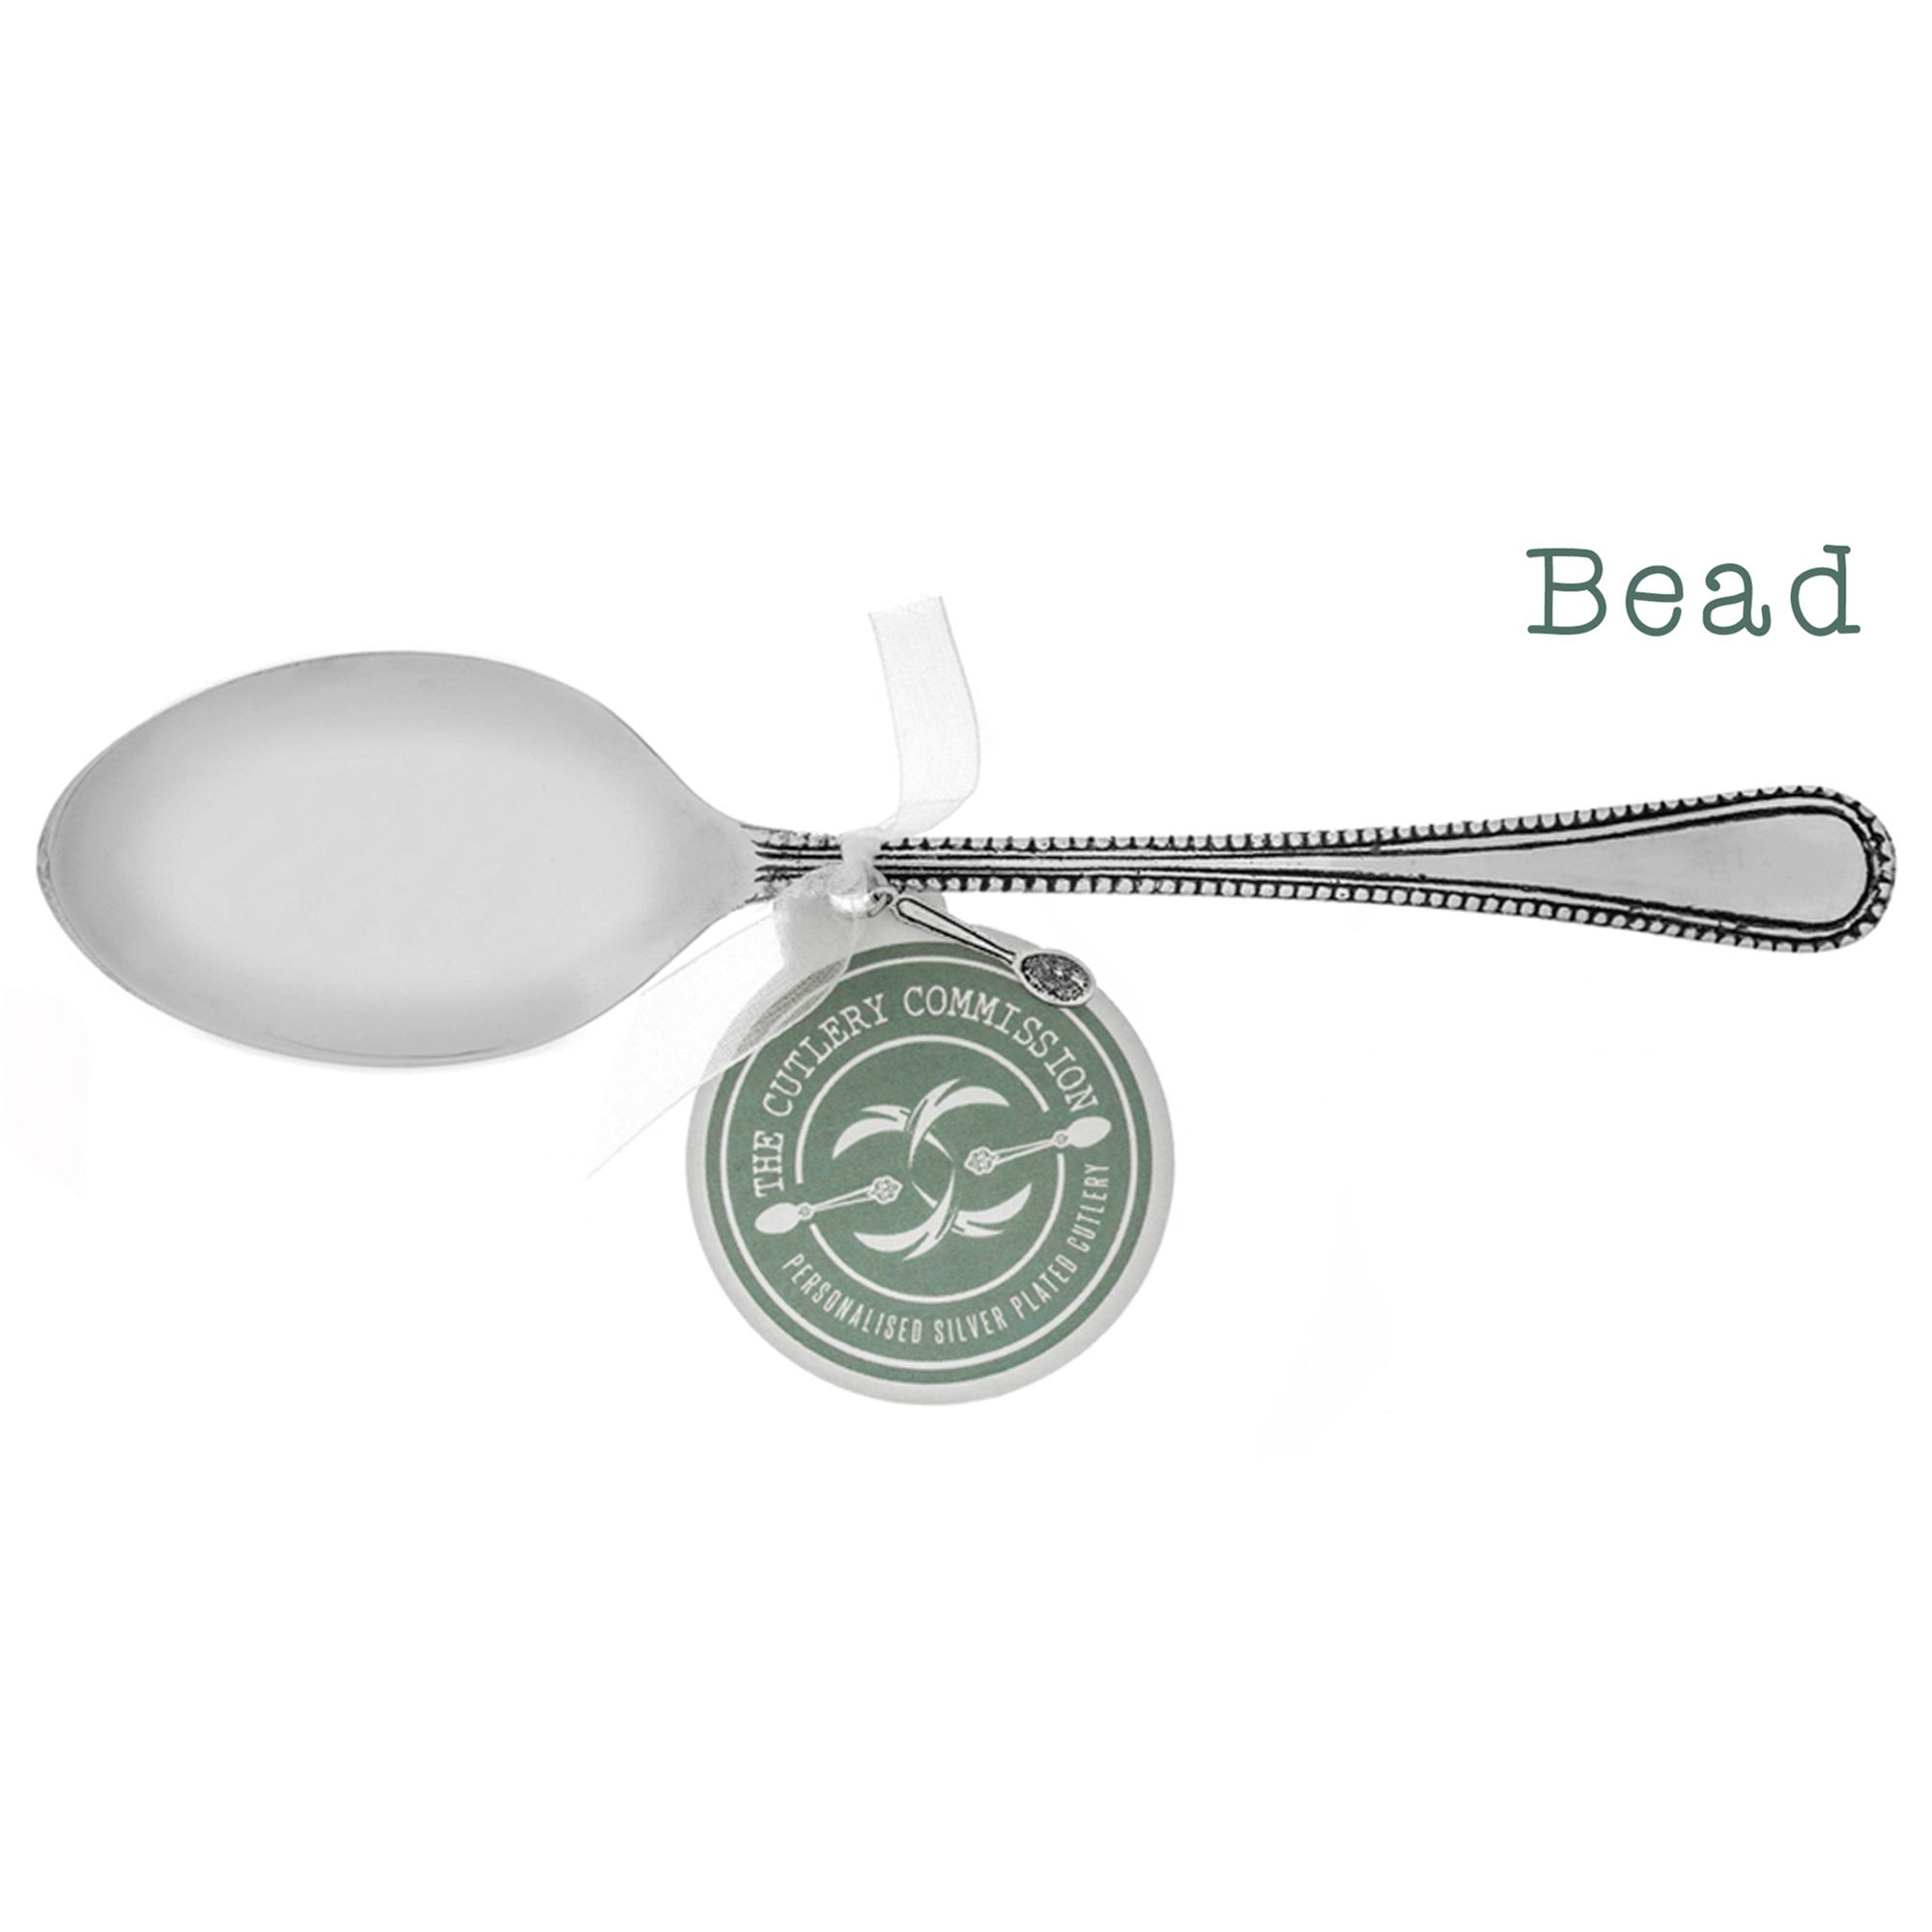 Cutlery Commission Cutlery Commission Silver-Plated Personalised Dessert Spoon